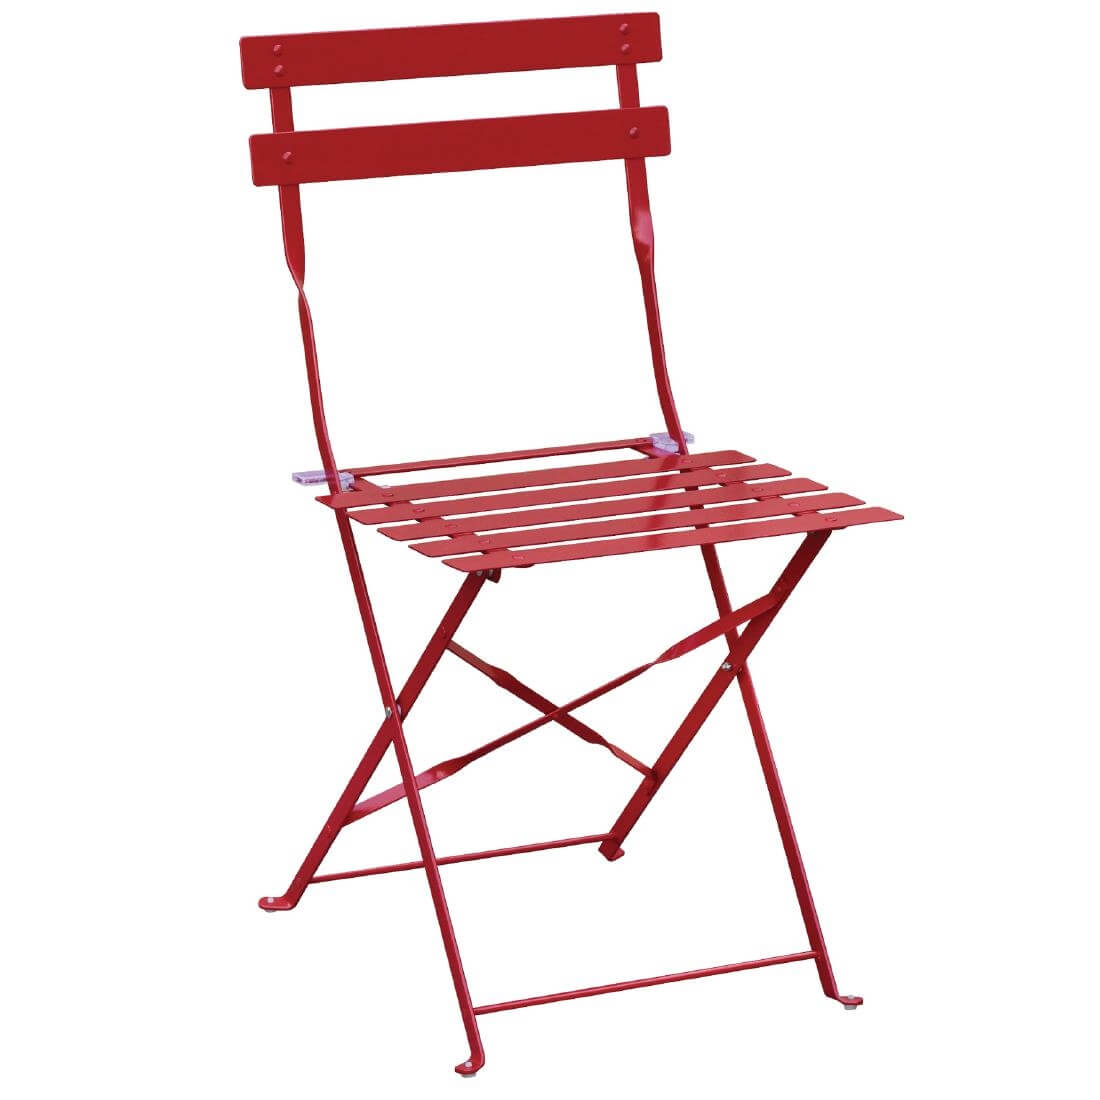 Steel Folding Chair - Red